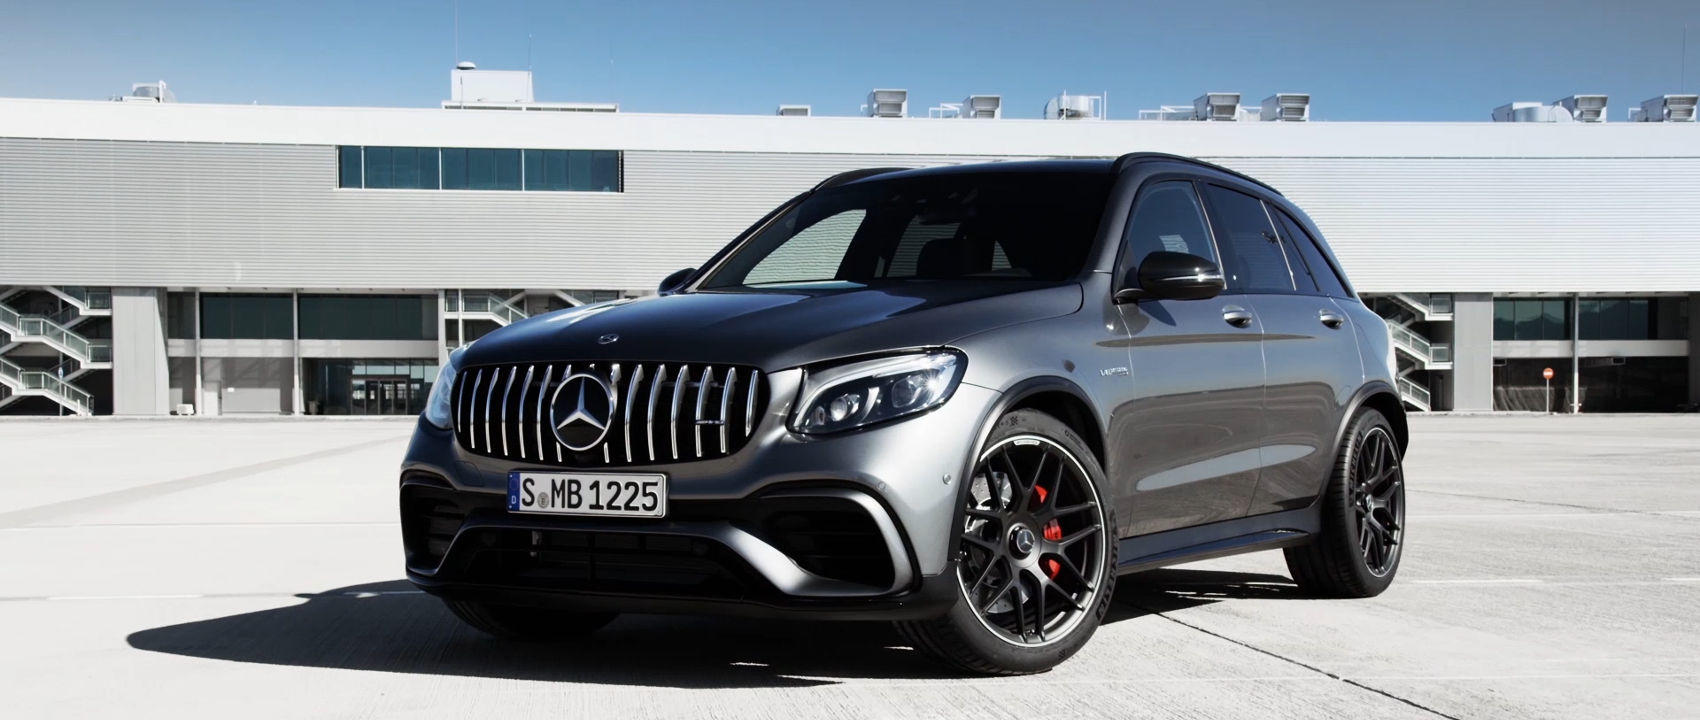 december launch mercedes amg glc 63 s tynan motors car sales. Black Bedroom Furniture Sets. Home Design Ideas